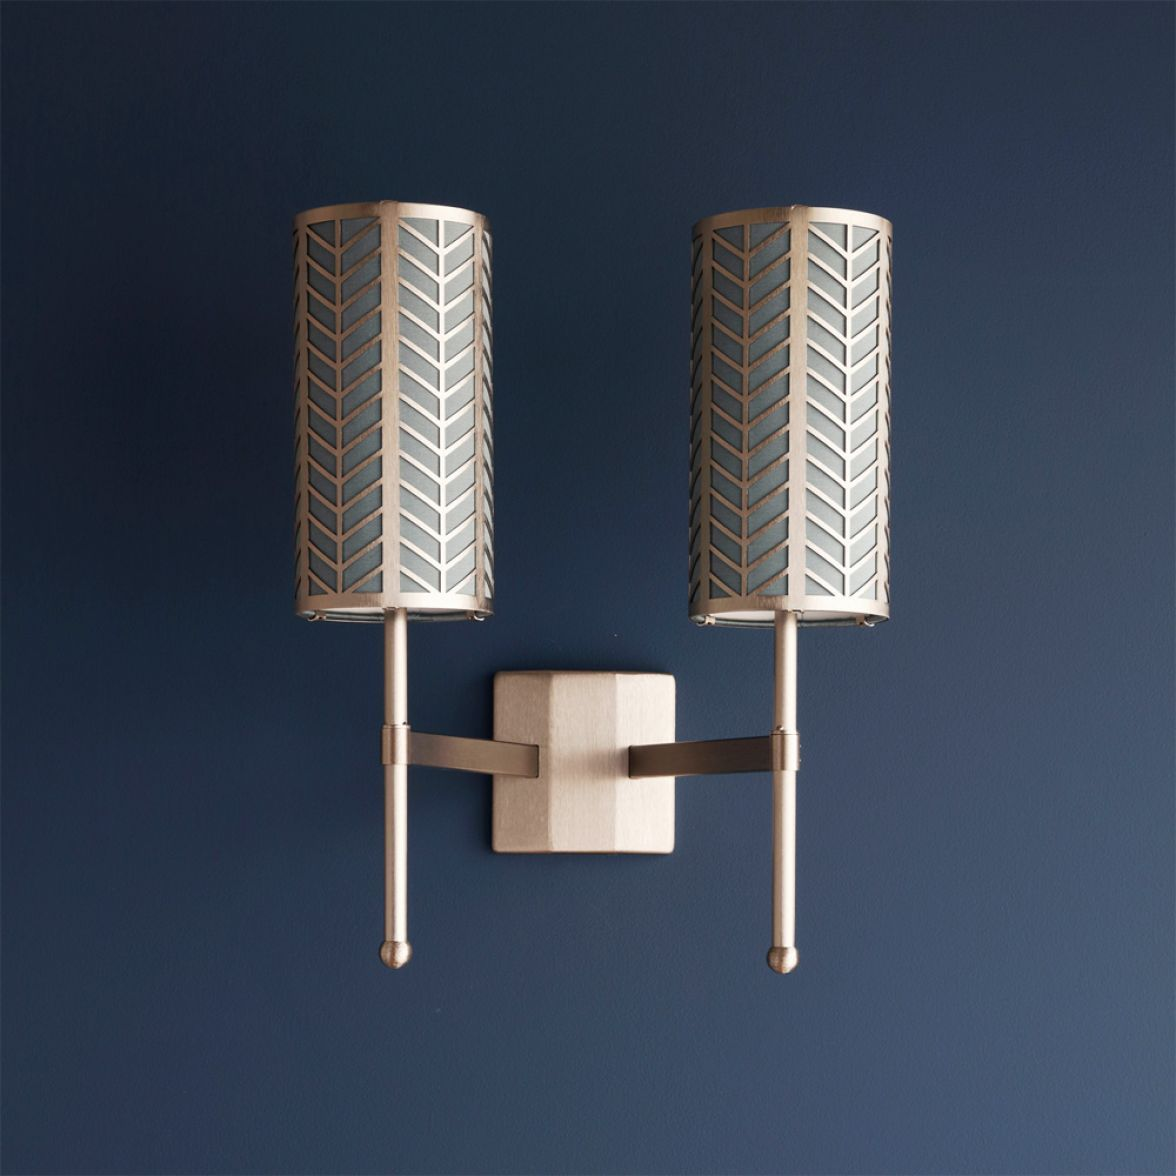 Double Stem Wall lamp